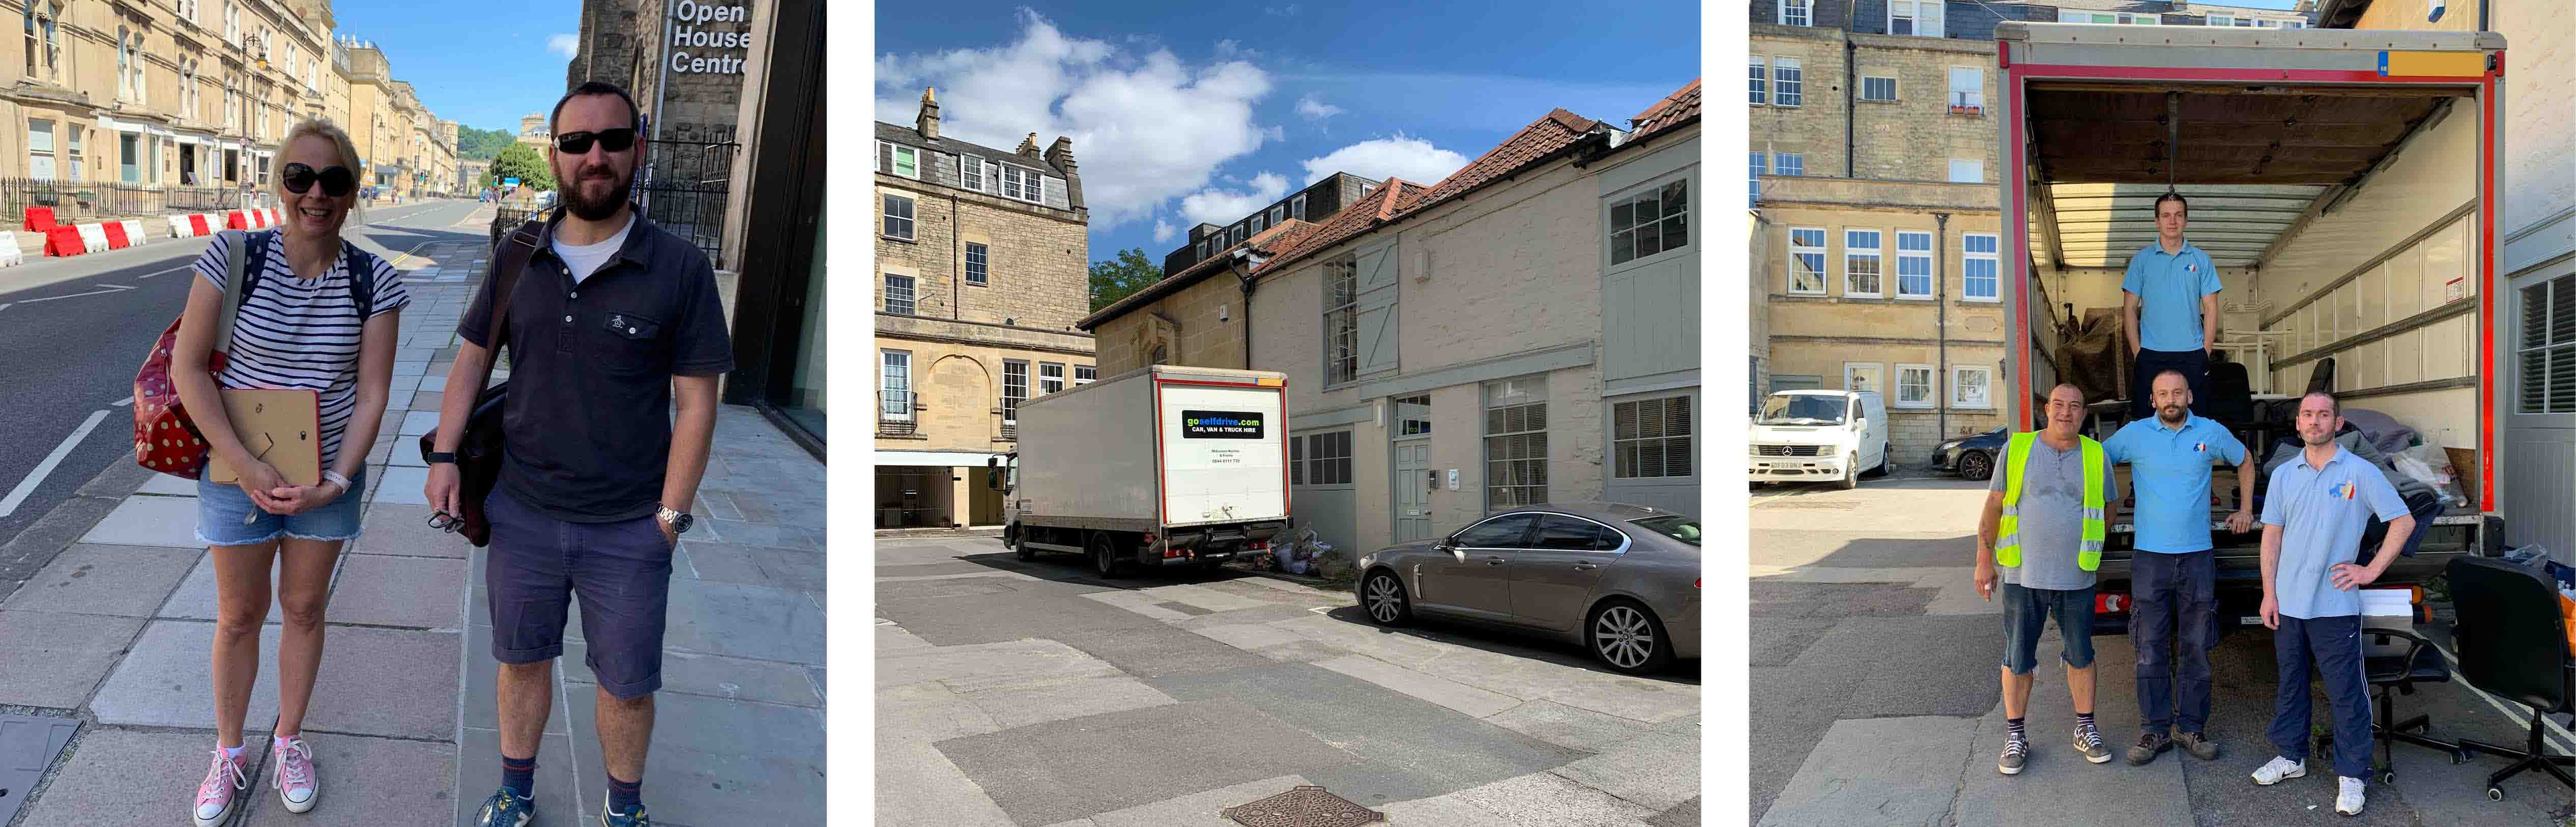 James and Rebecca oversaw the Seccl office move from Pulteney Mews to Manvers Street...